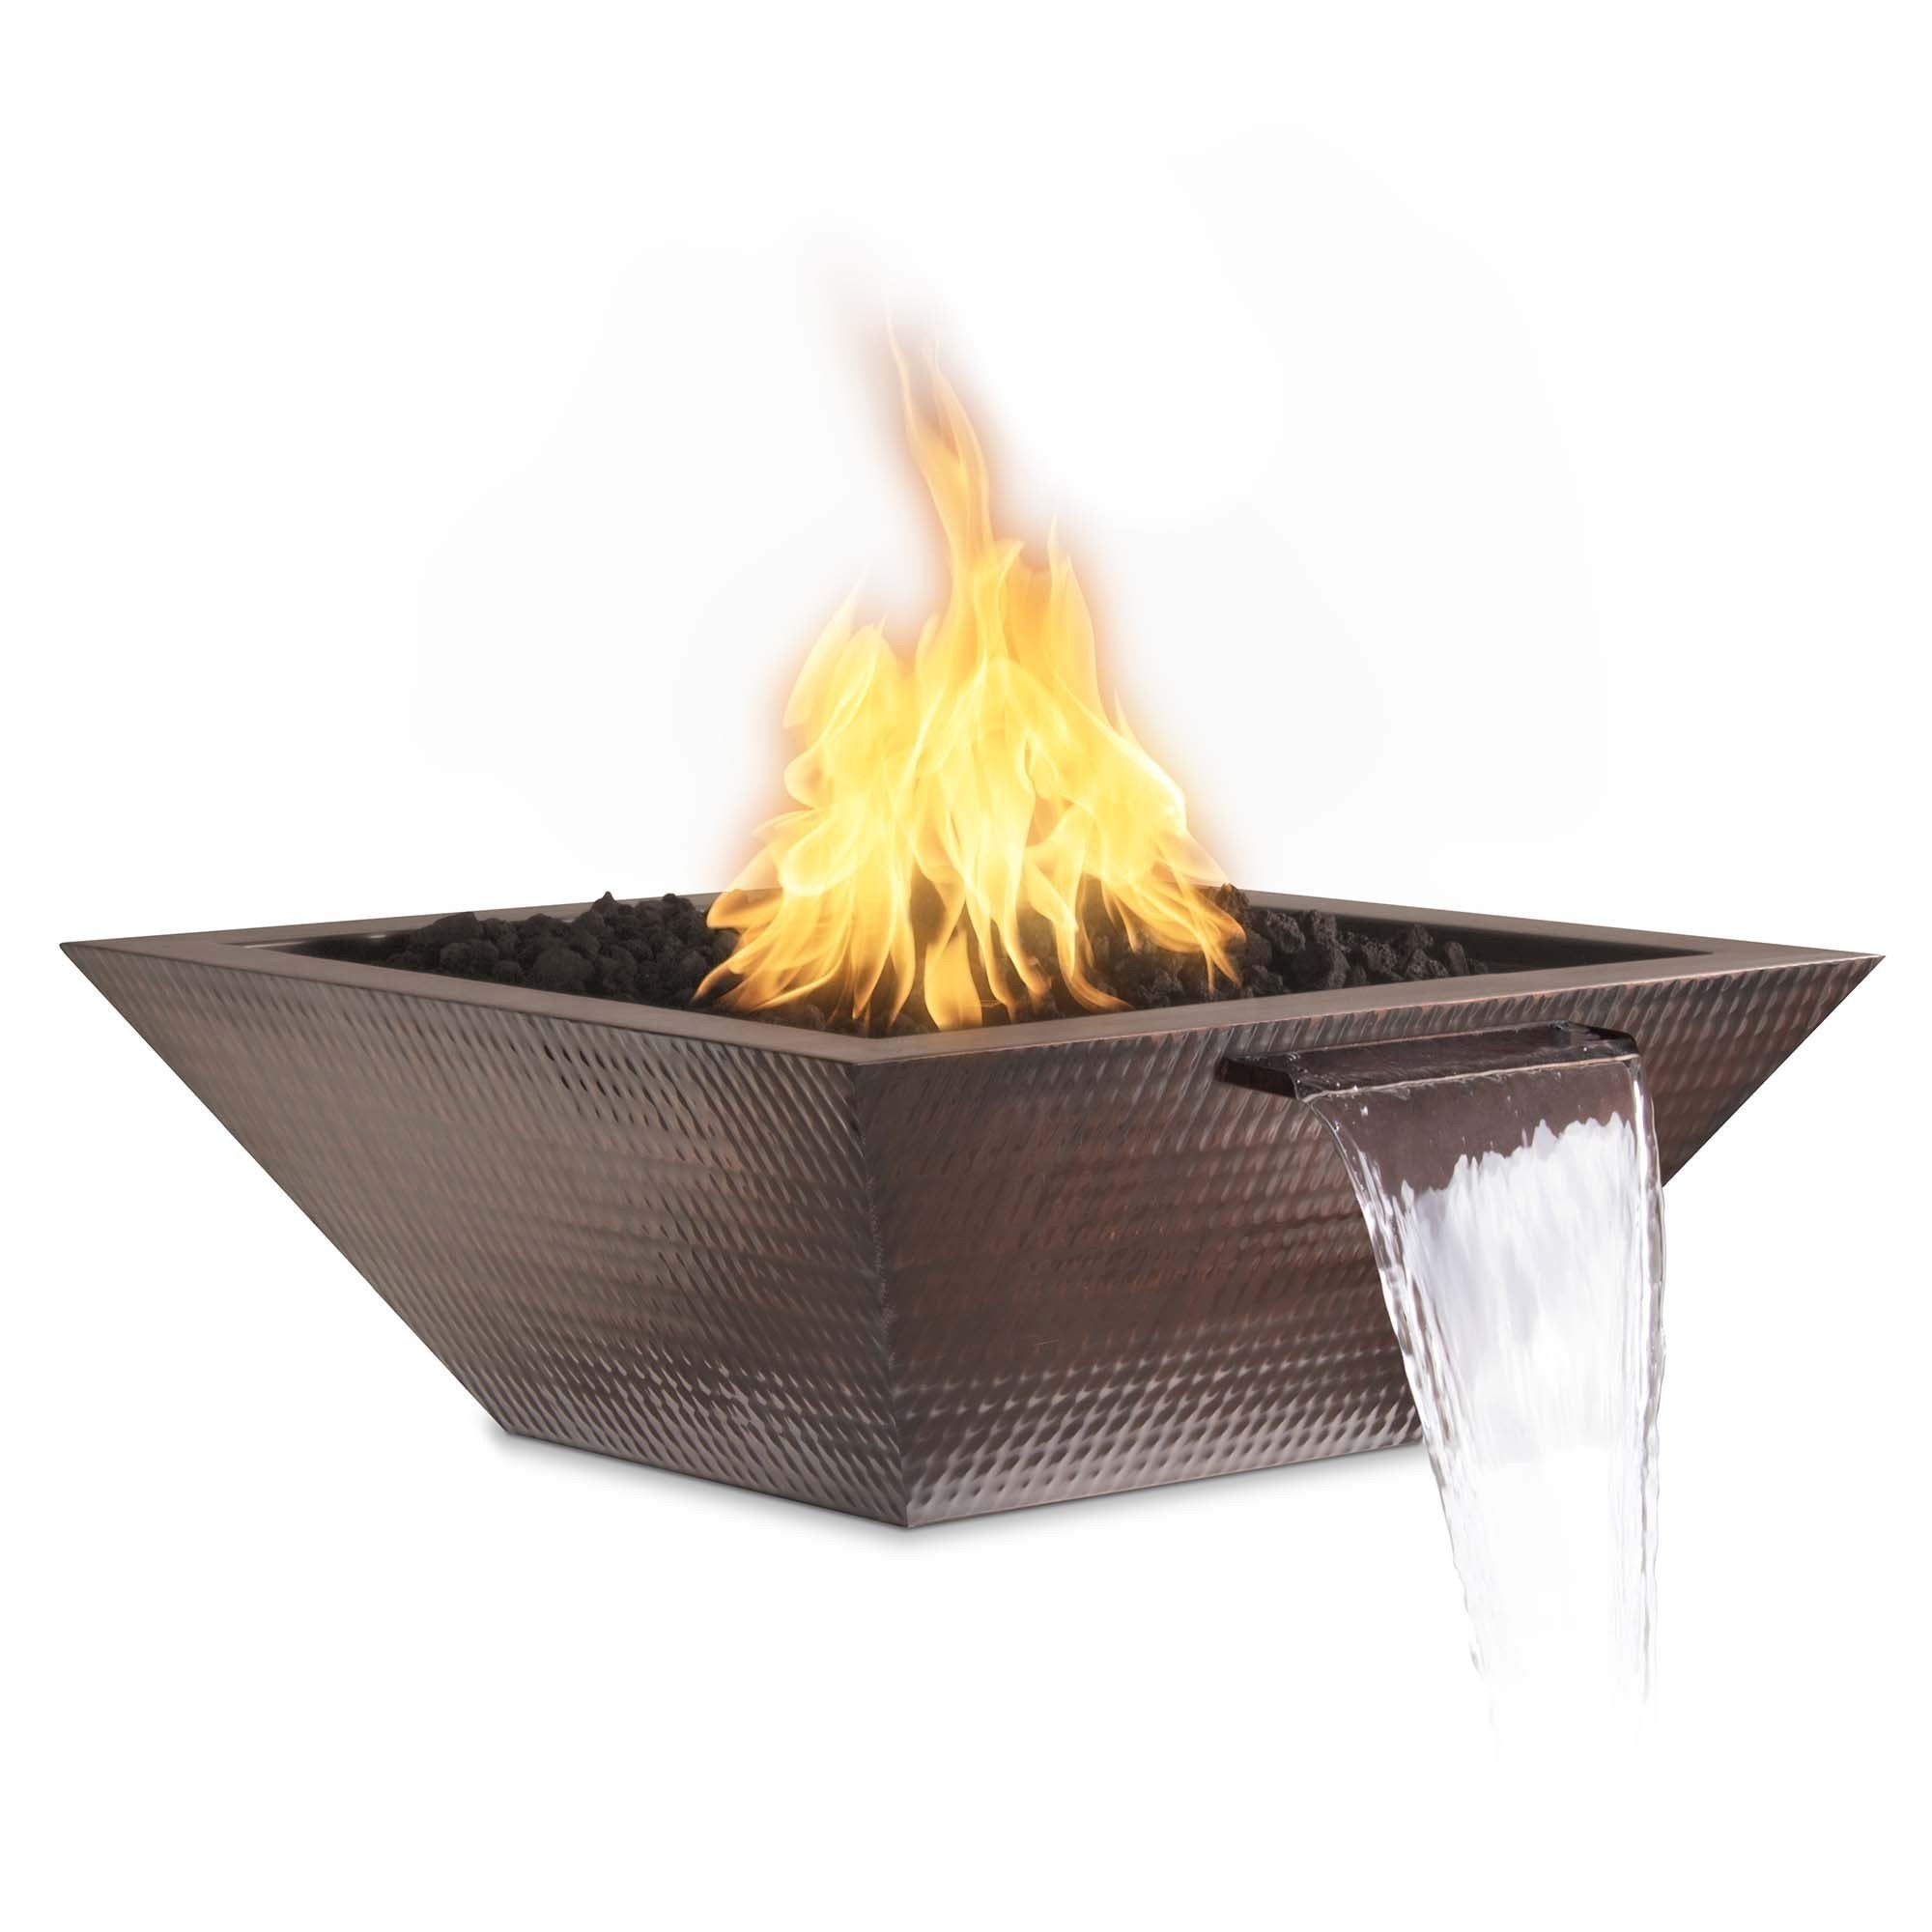 "TOP Fires by The Outdoor Plus Maya Hammered Patina Copper Fire & Water Bowl 30"" - Fire Pit Oasis"